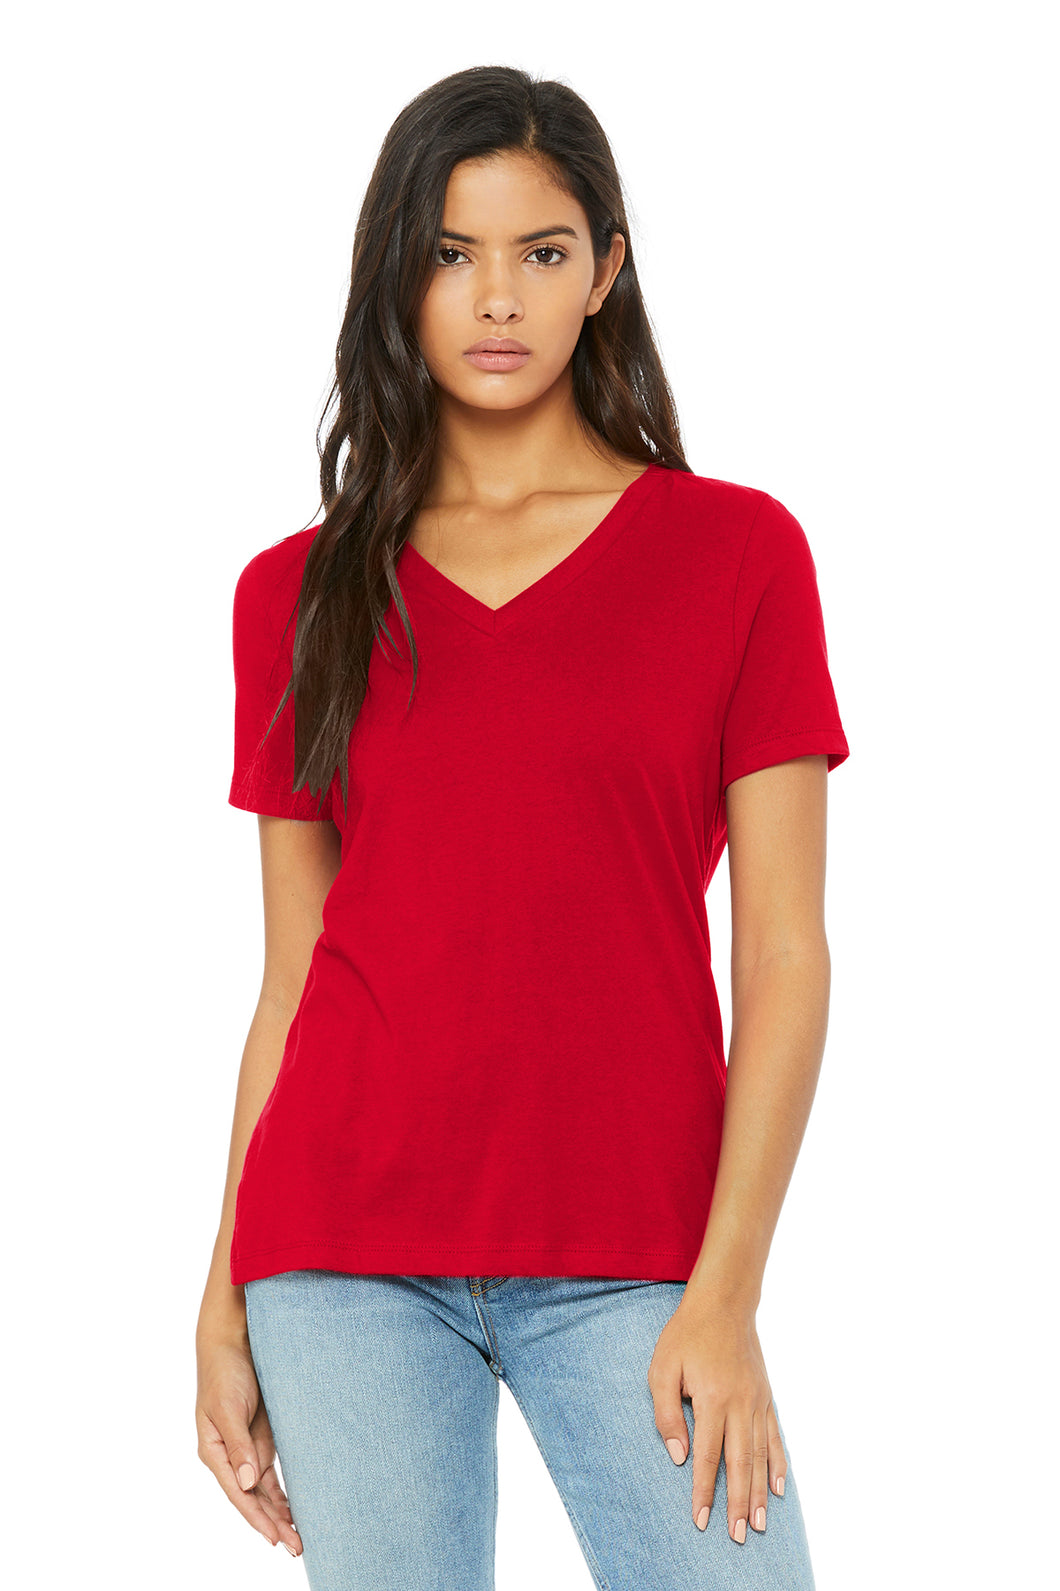 Womens Relaxed Tee V-Neck Red & White